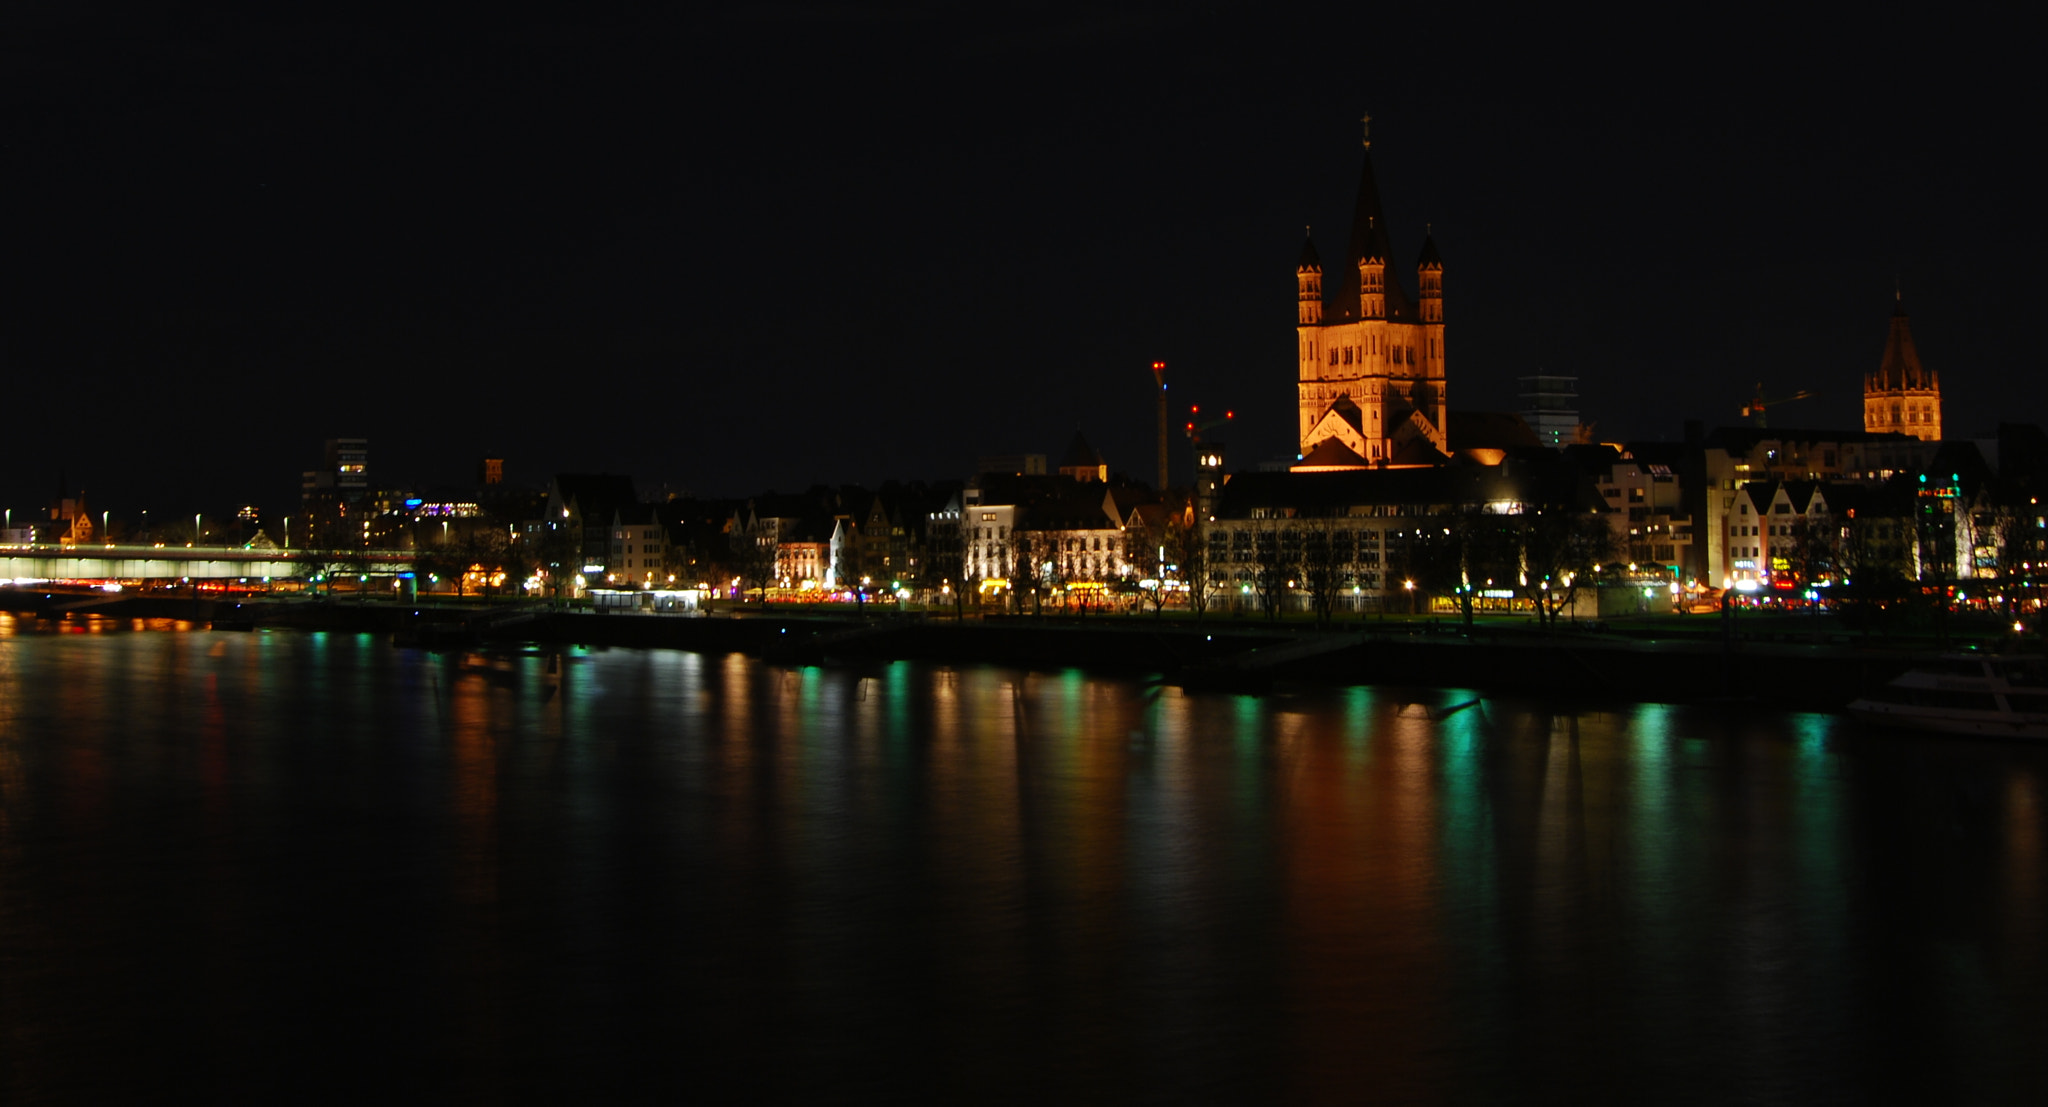 Photograph Evening in Cologne, Germany by Andrea Leung on 500px